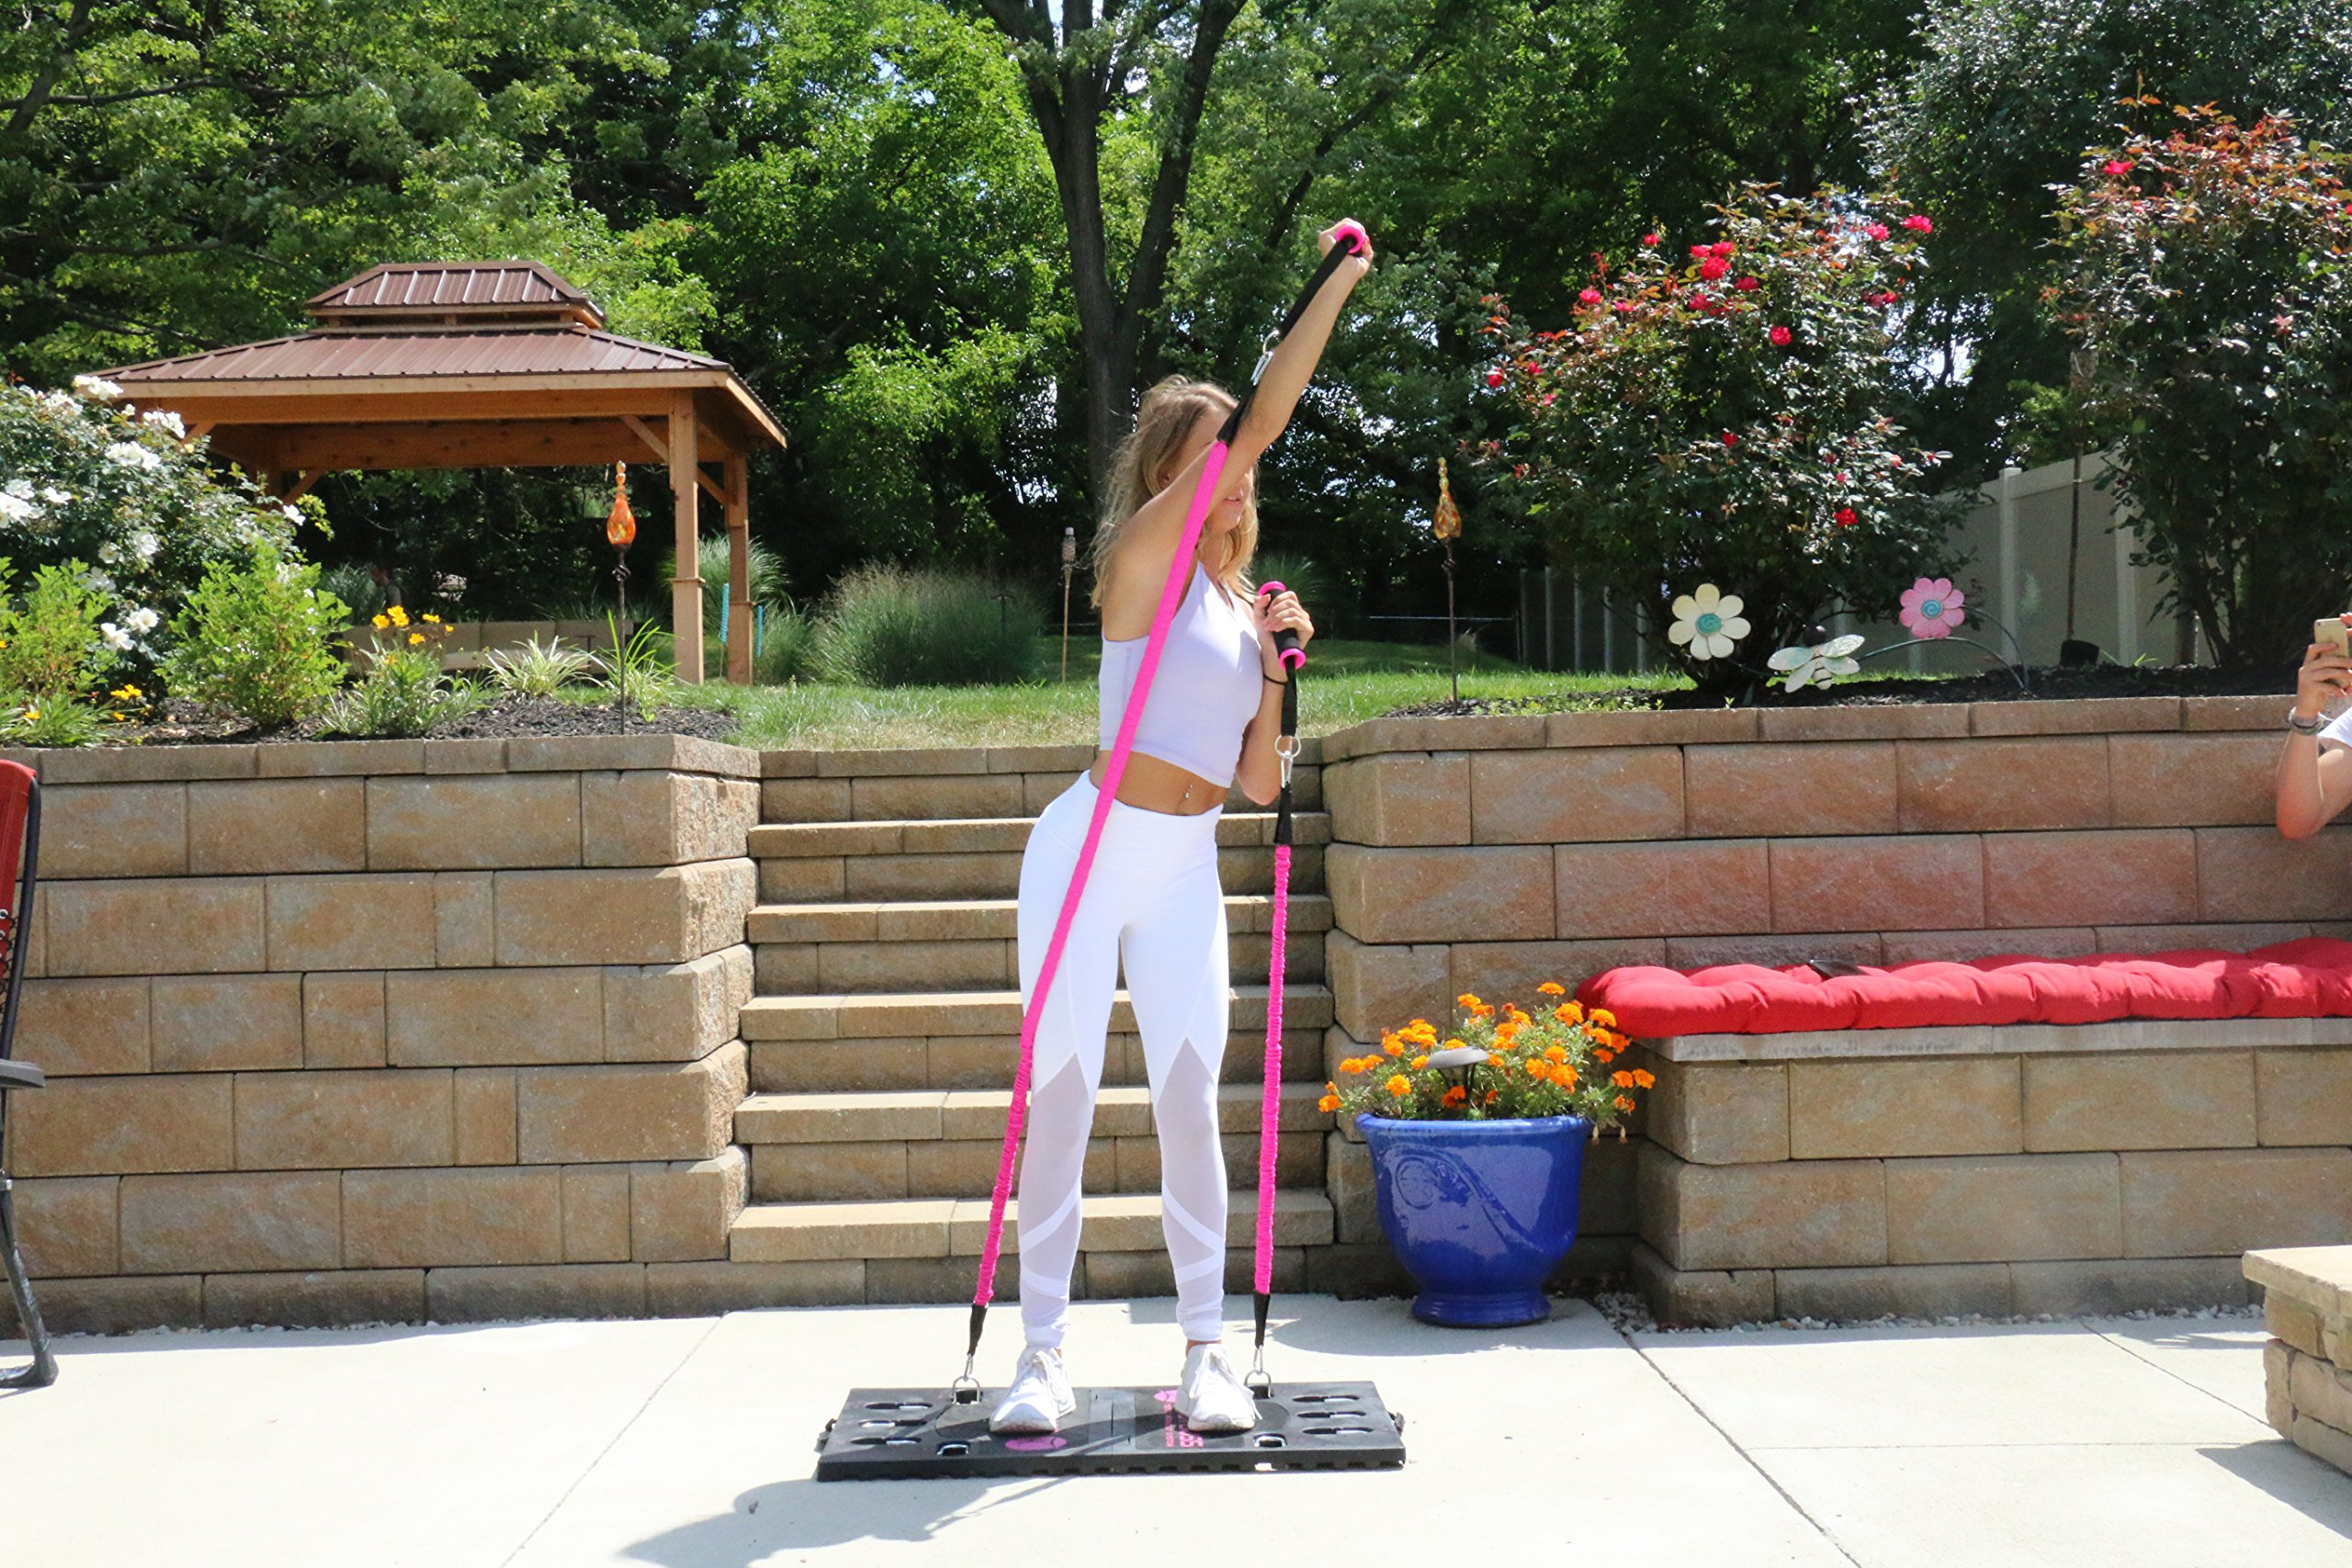 BodyBoss Home Gym 2.0 - Full Portable Gym - Full Body Workouts for Home, Travel or Anywhere You Take It. by BodyBoss (Image #6)